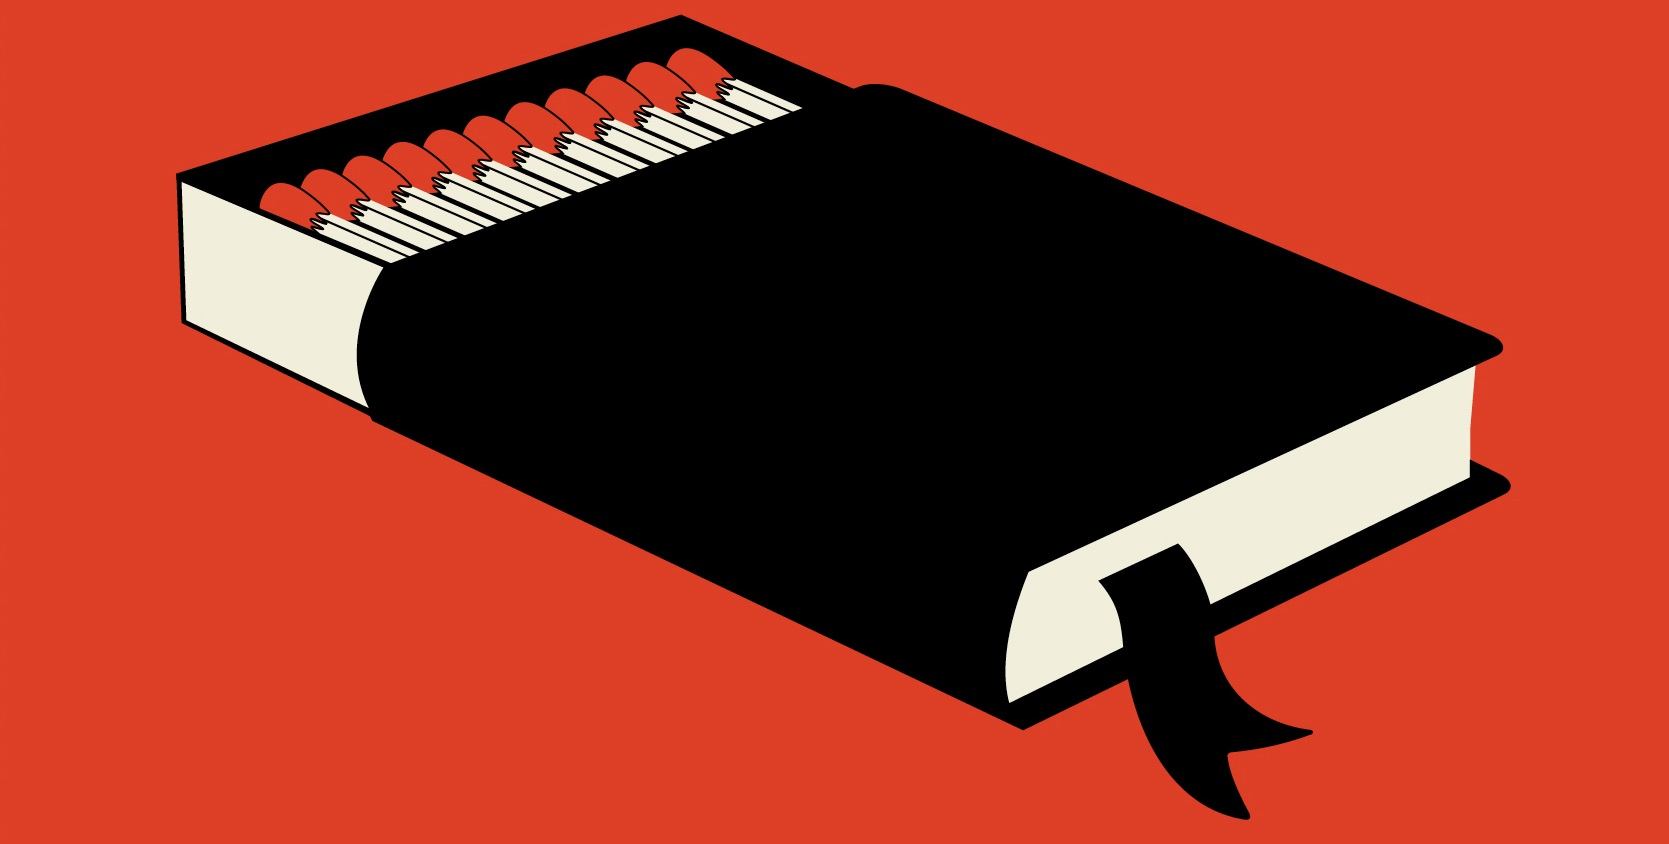 This clever copy of Fahrenheit 451 can only be read when burned